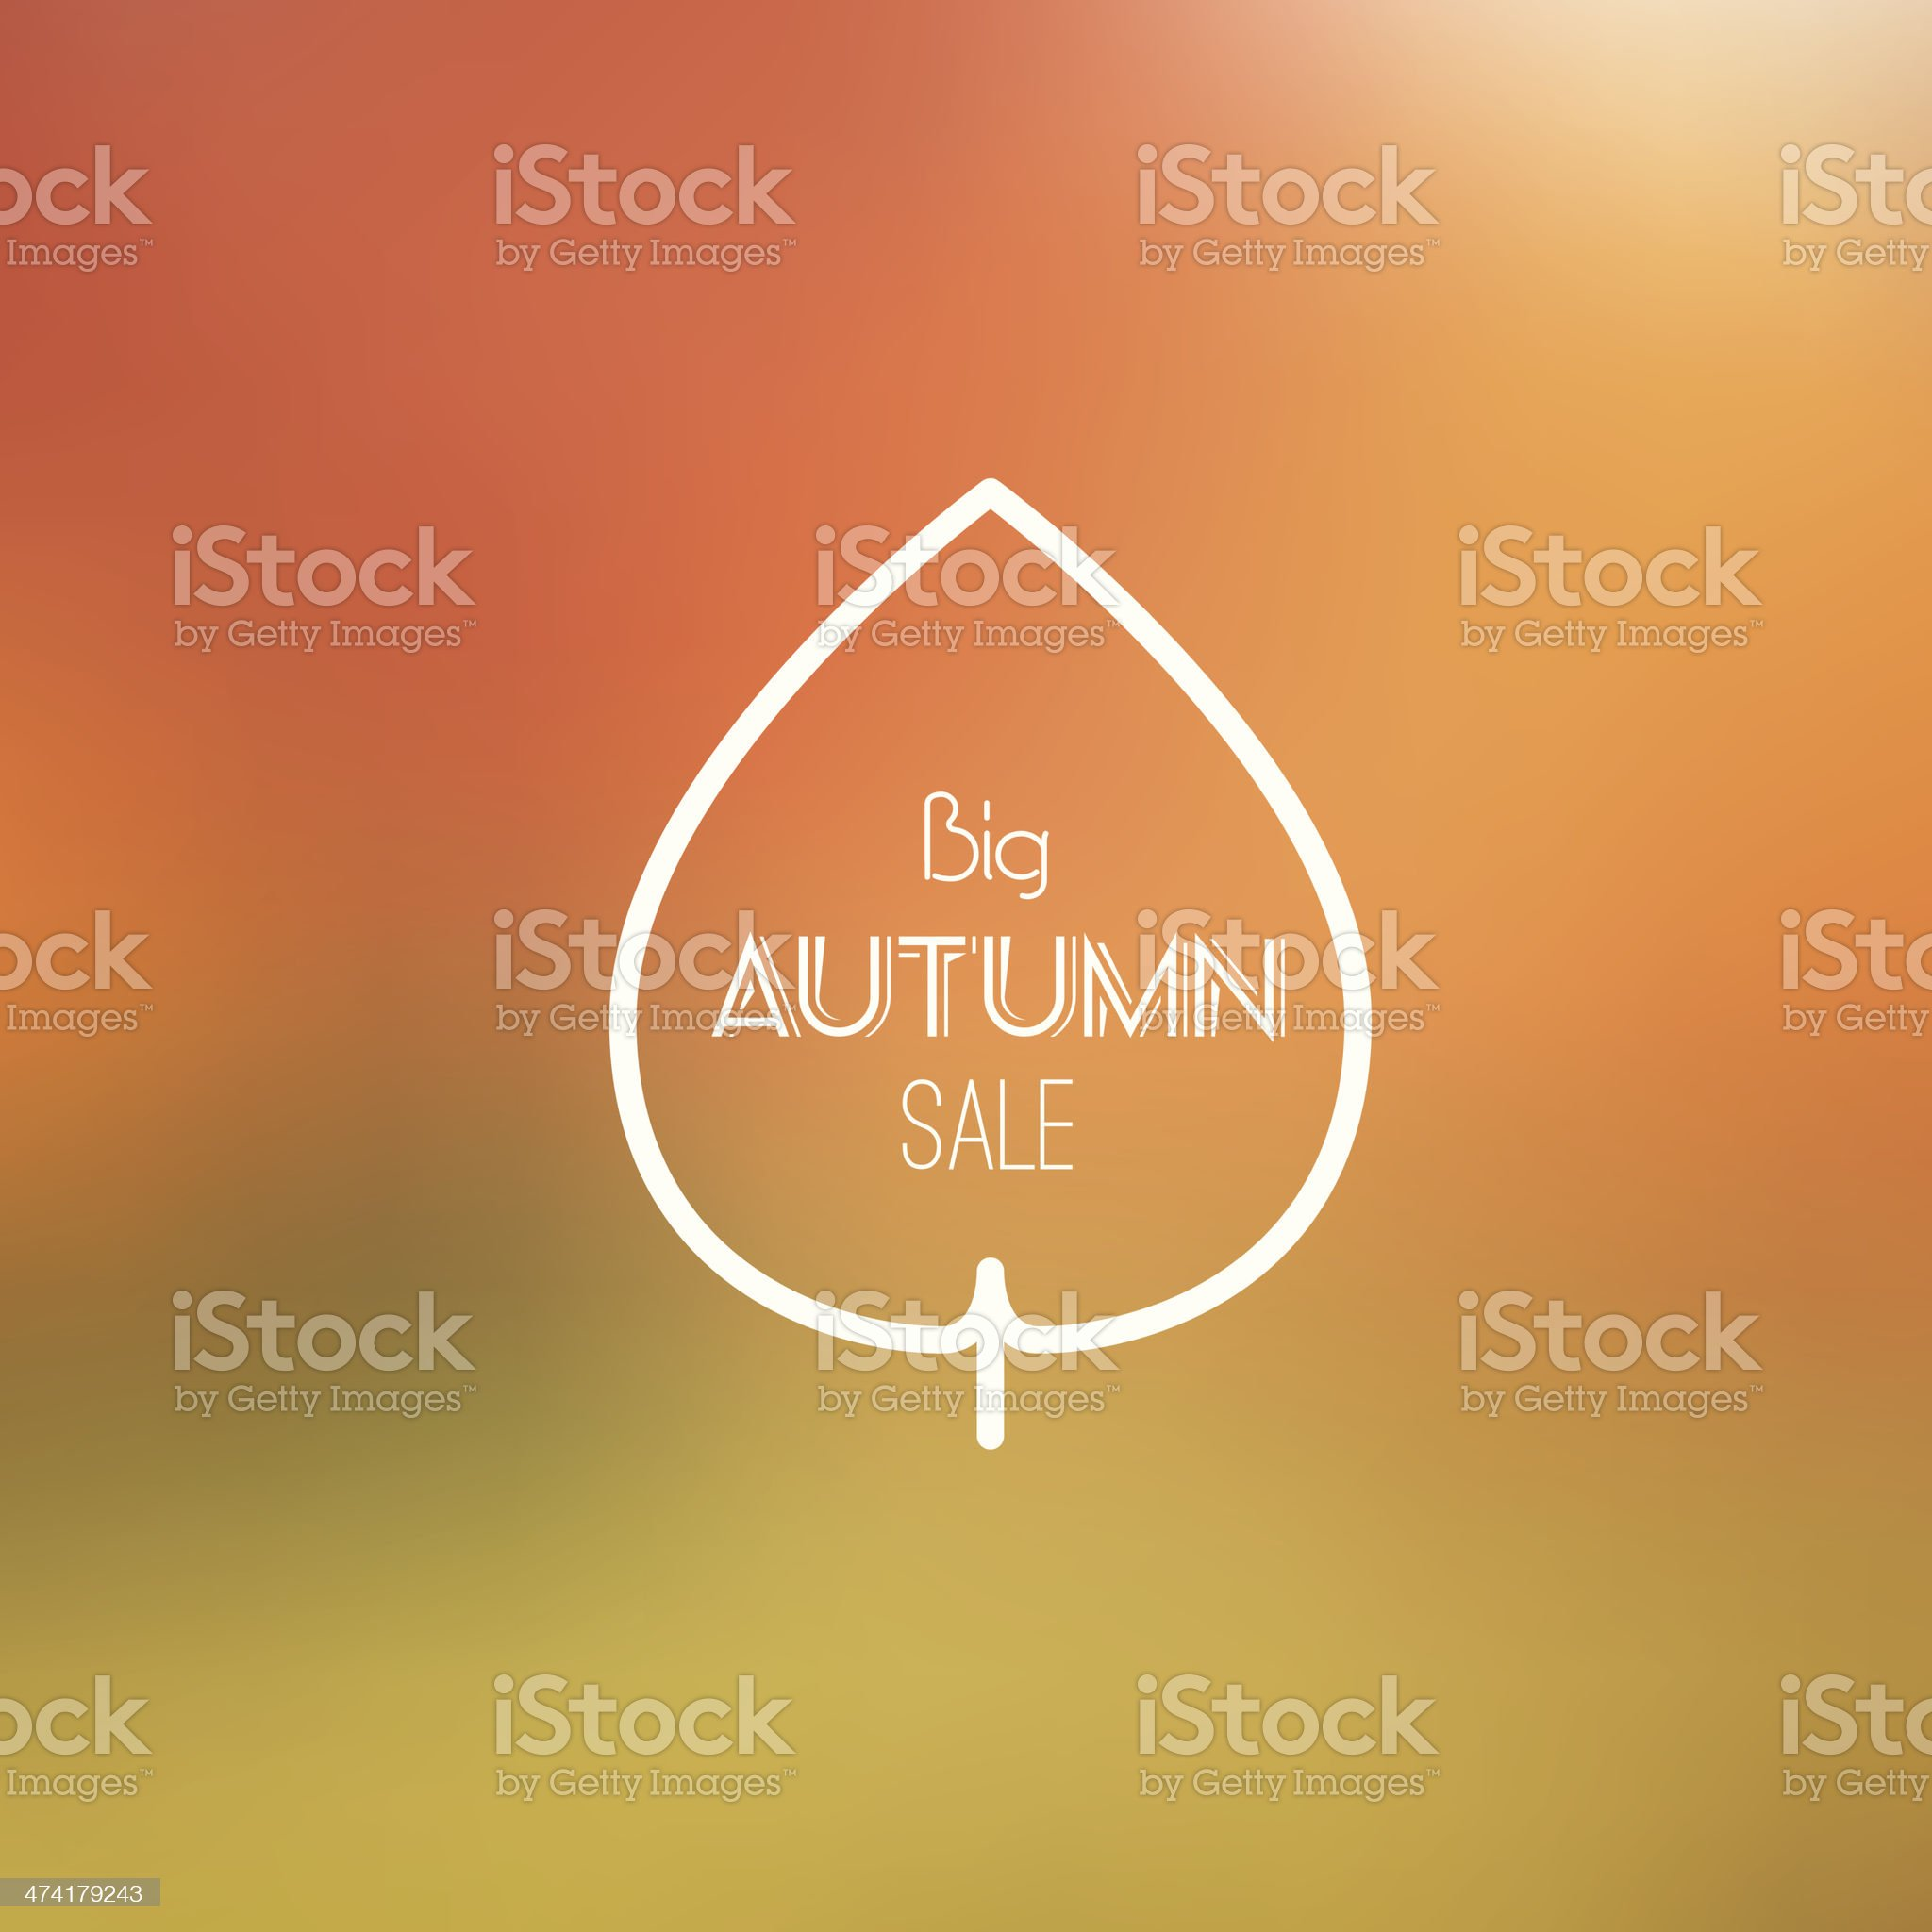 Big Autumn Sale Vector Retro Poster witn Blurred Background royalty-free stock vector art